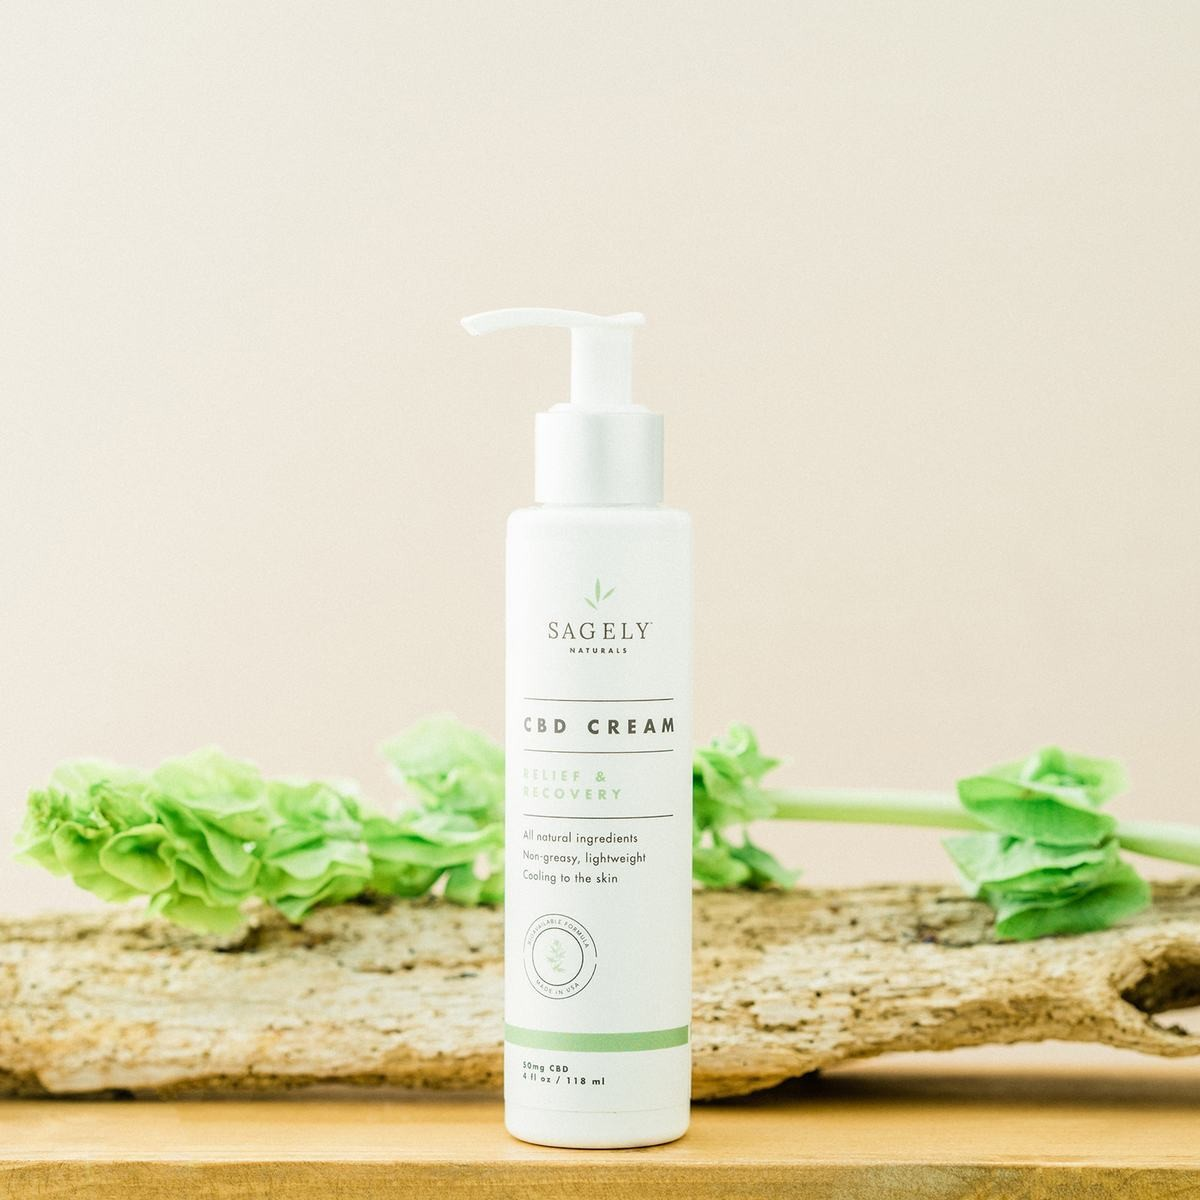 Sagely Naturals CBD Relief and Recovery Cream